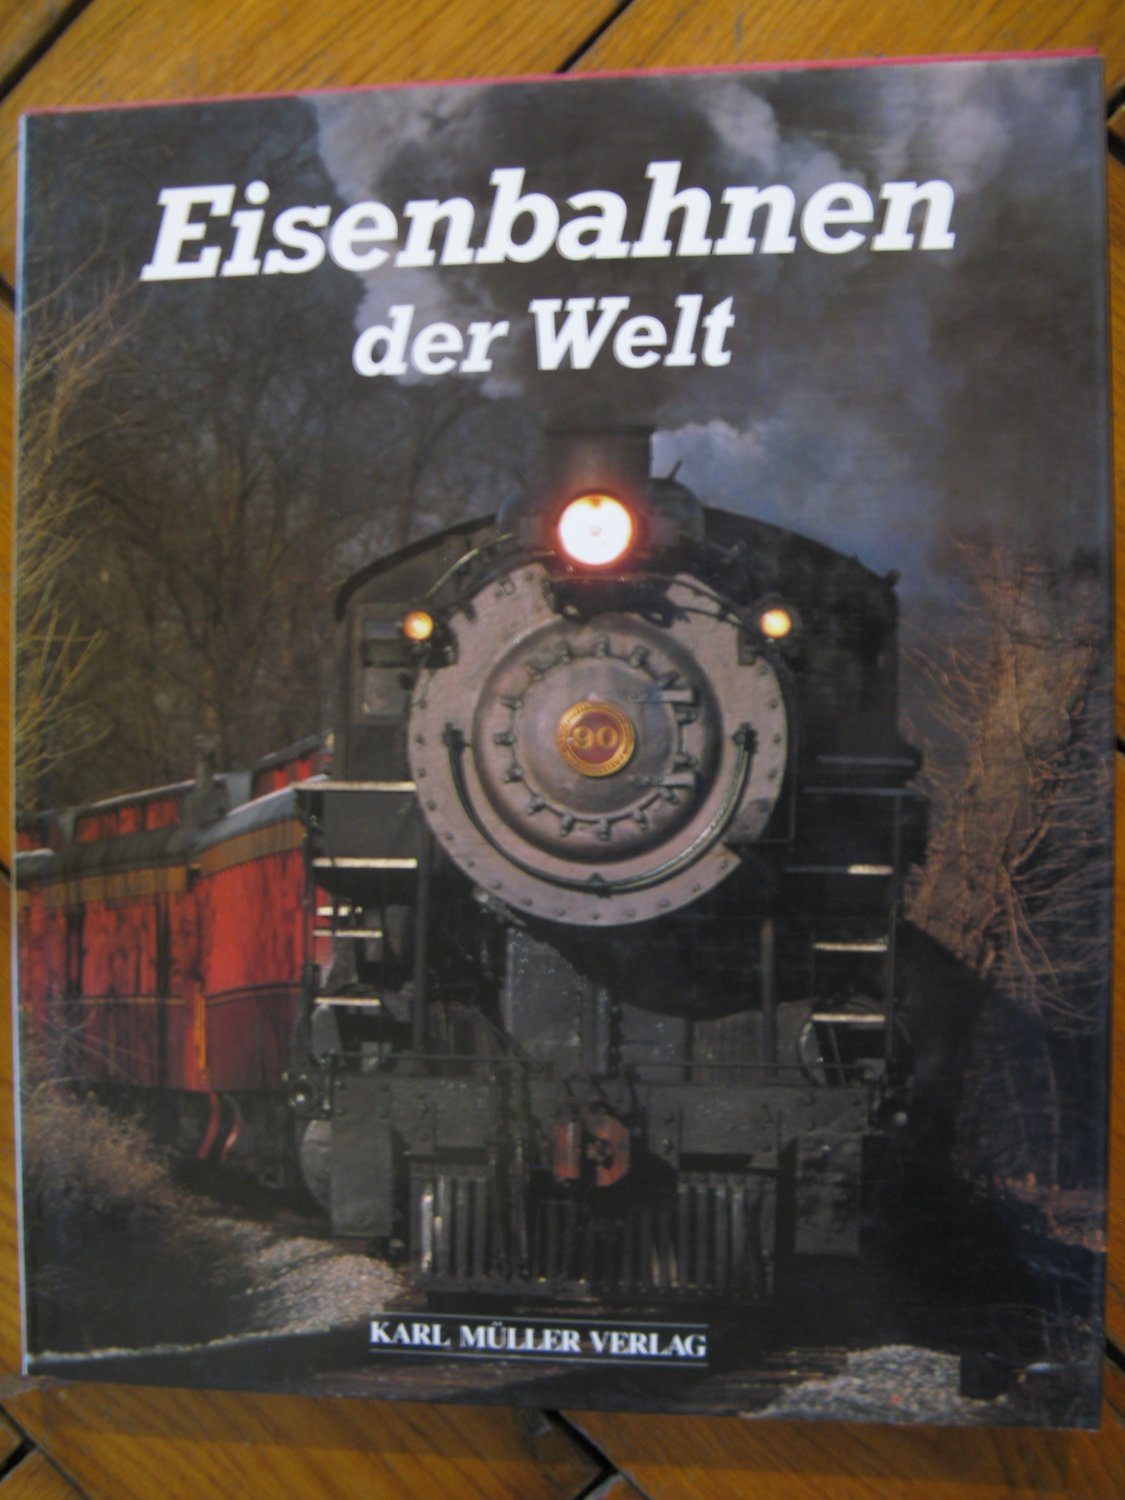 eisenbahnen der welt david c lustig buch gebraucht. Black Bedroom Furniture Sets. Home Design Ideas